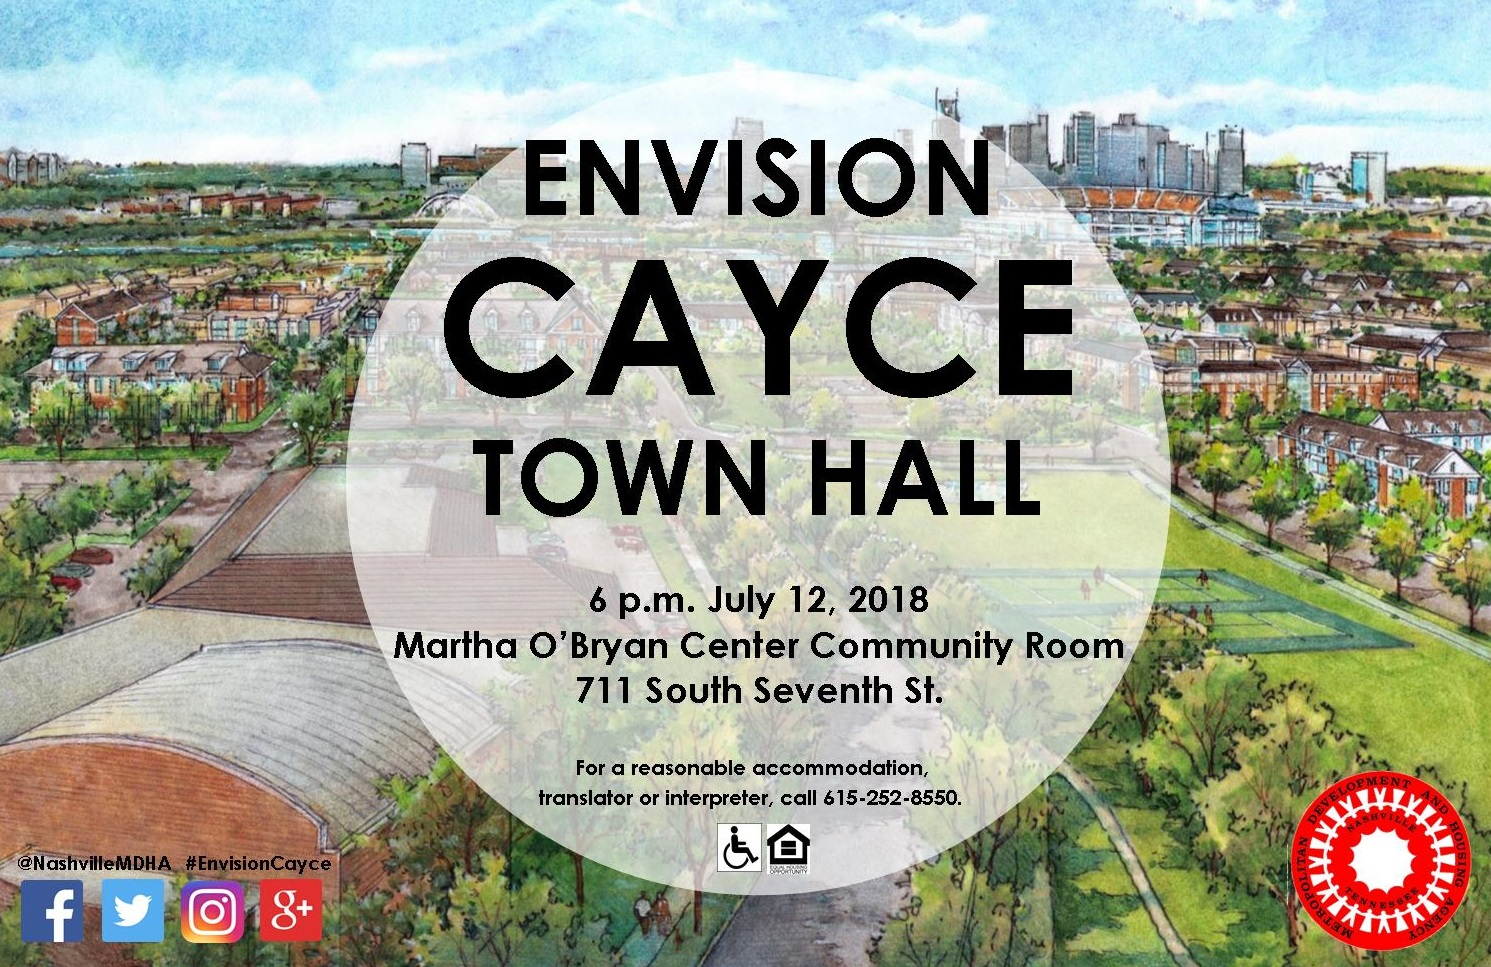 envision-cayce-townhall-07122018